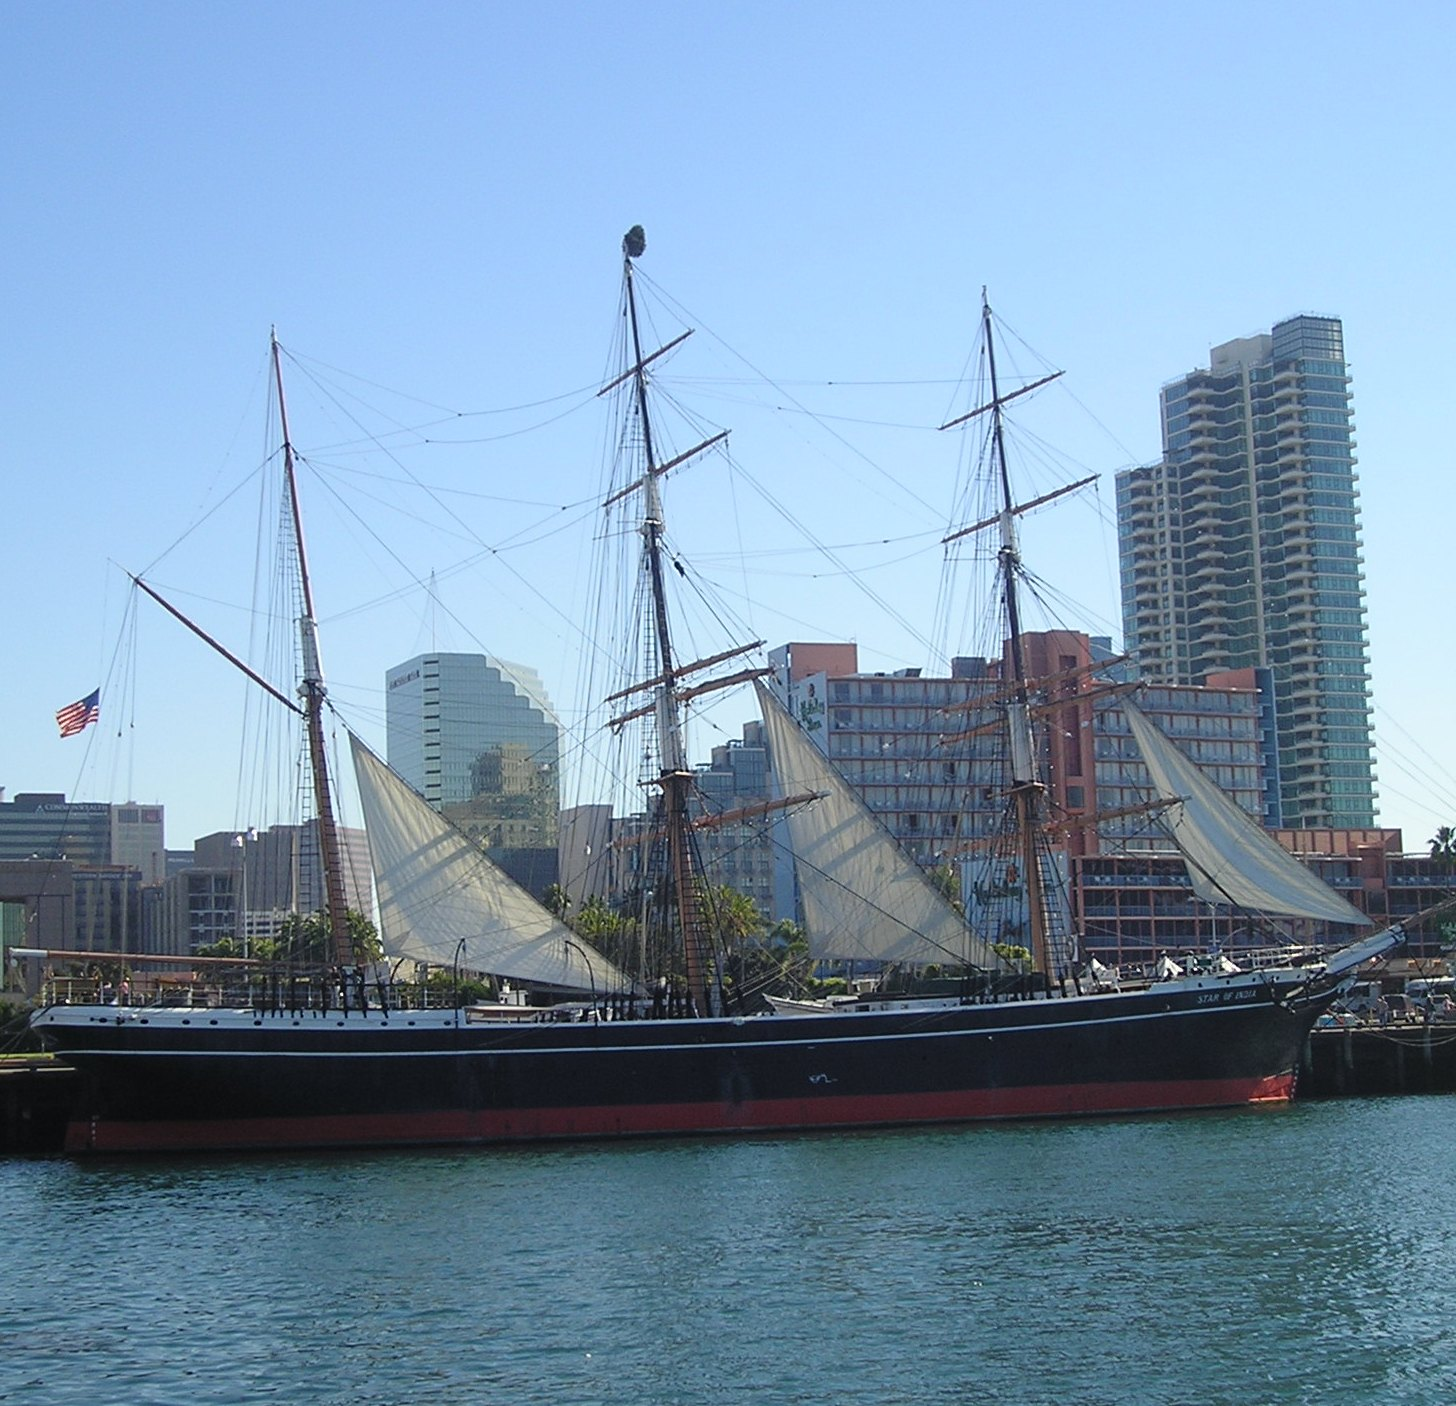 State of the art travel in the 1860s. Star of India sailing ship in San Diego harbor. Photo by James Ulvog.